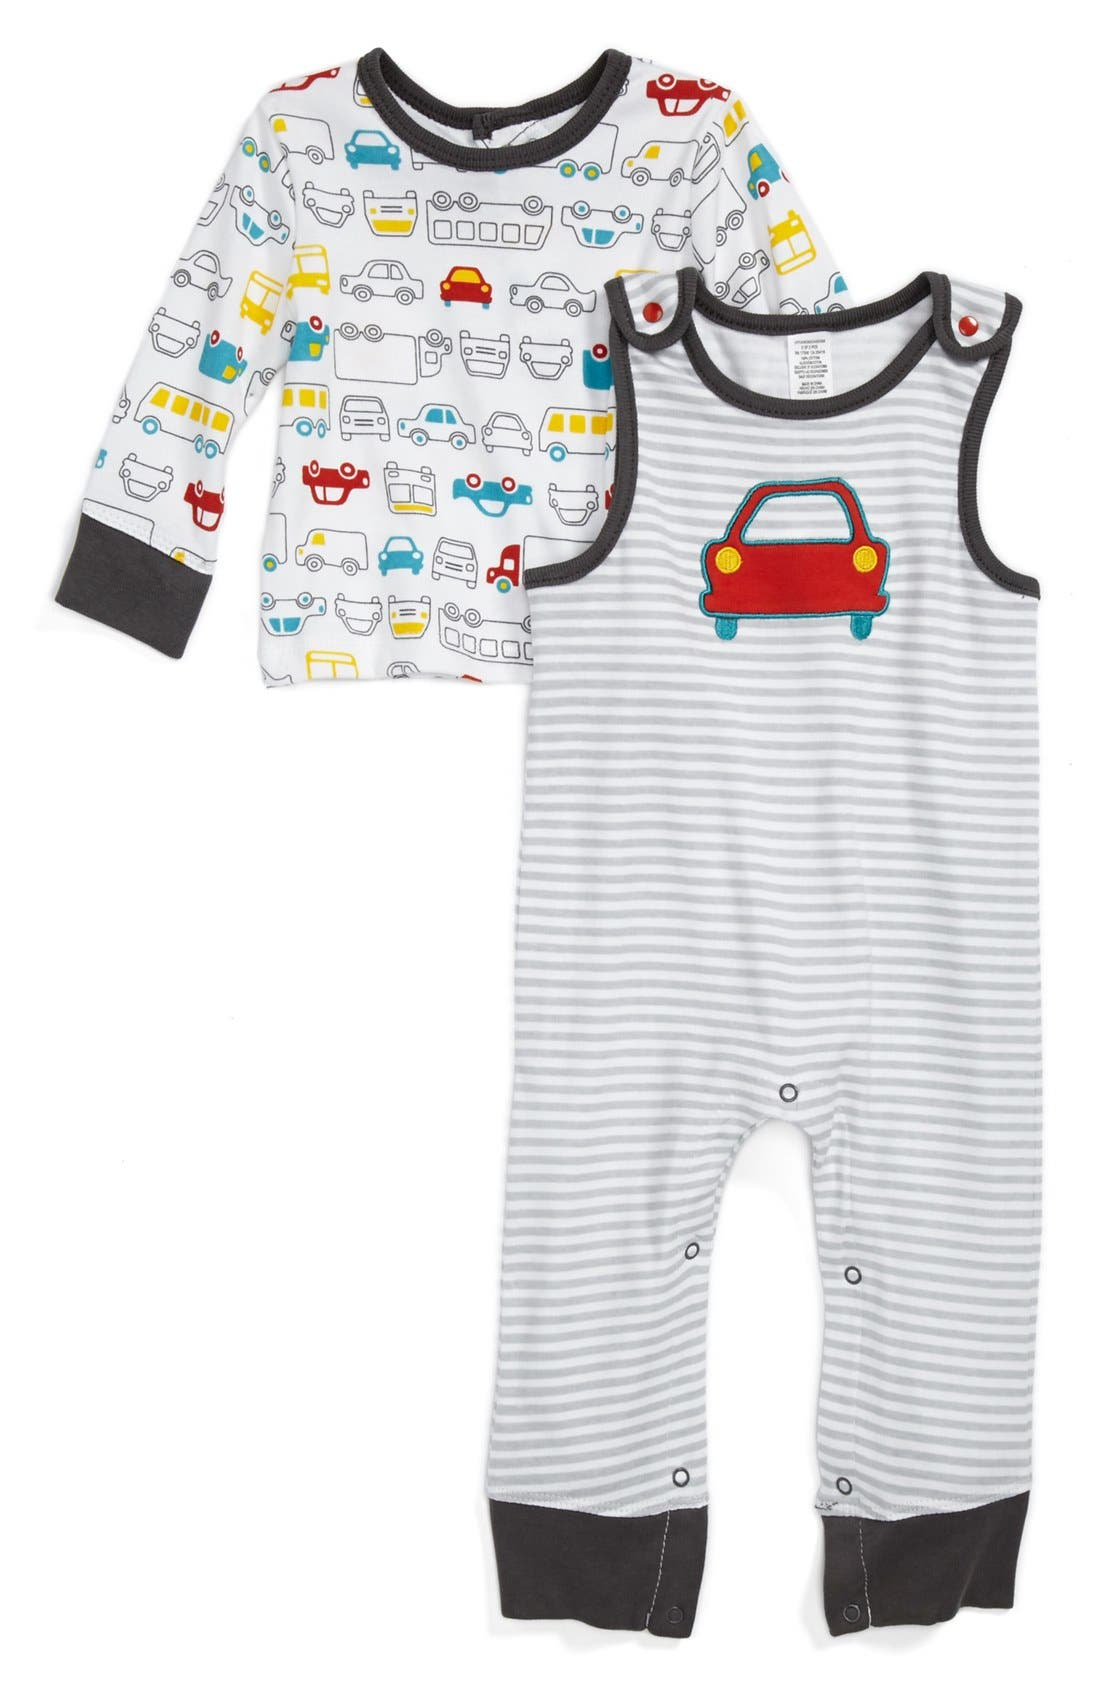 Alternate Image 1 Selected - Offspring 'Motorway' Top & Overalls (Baby Boys)